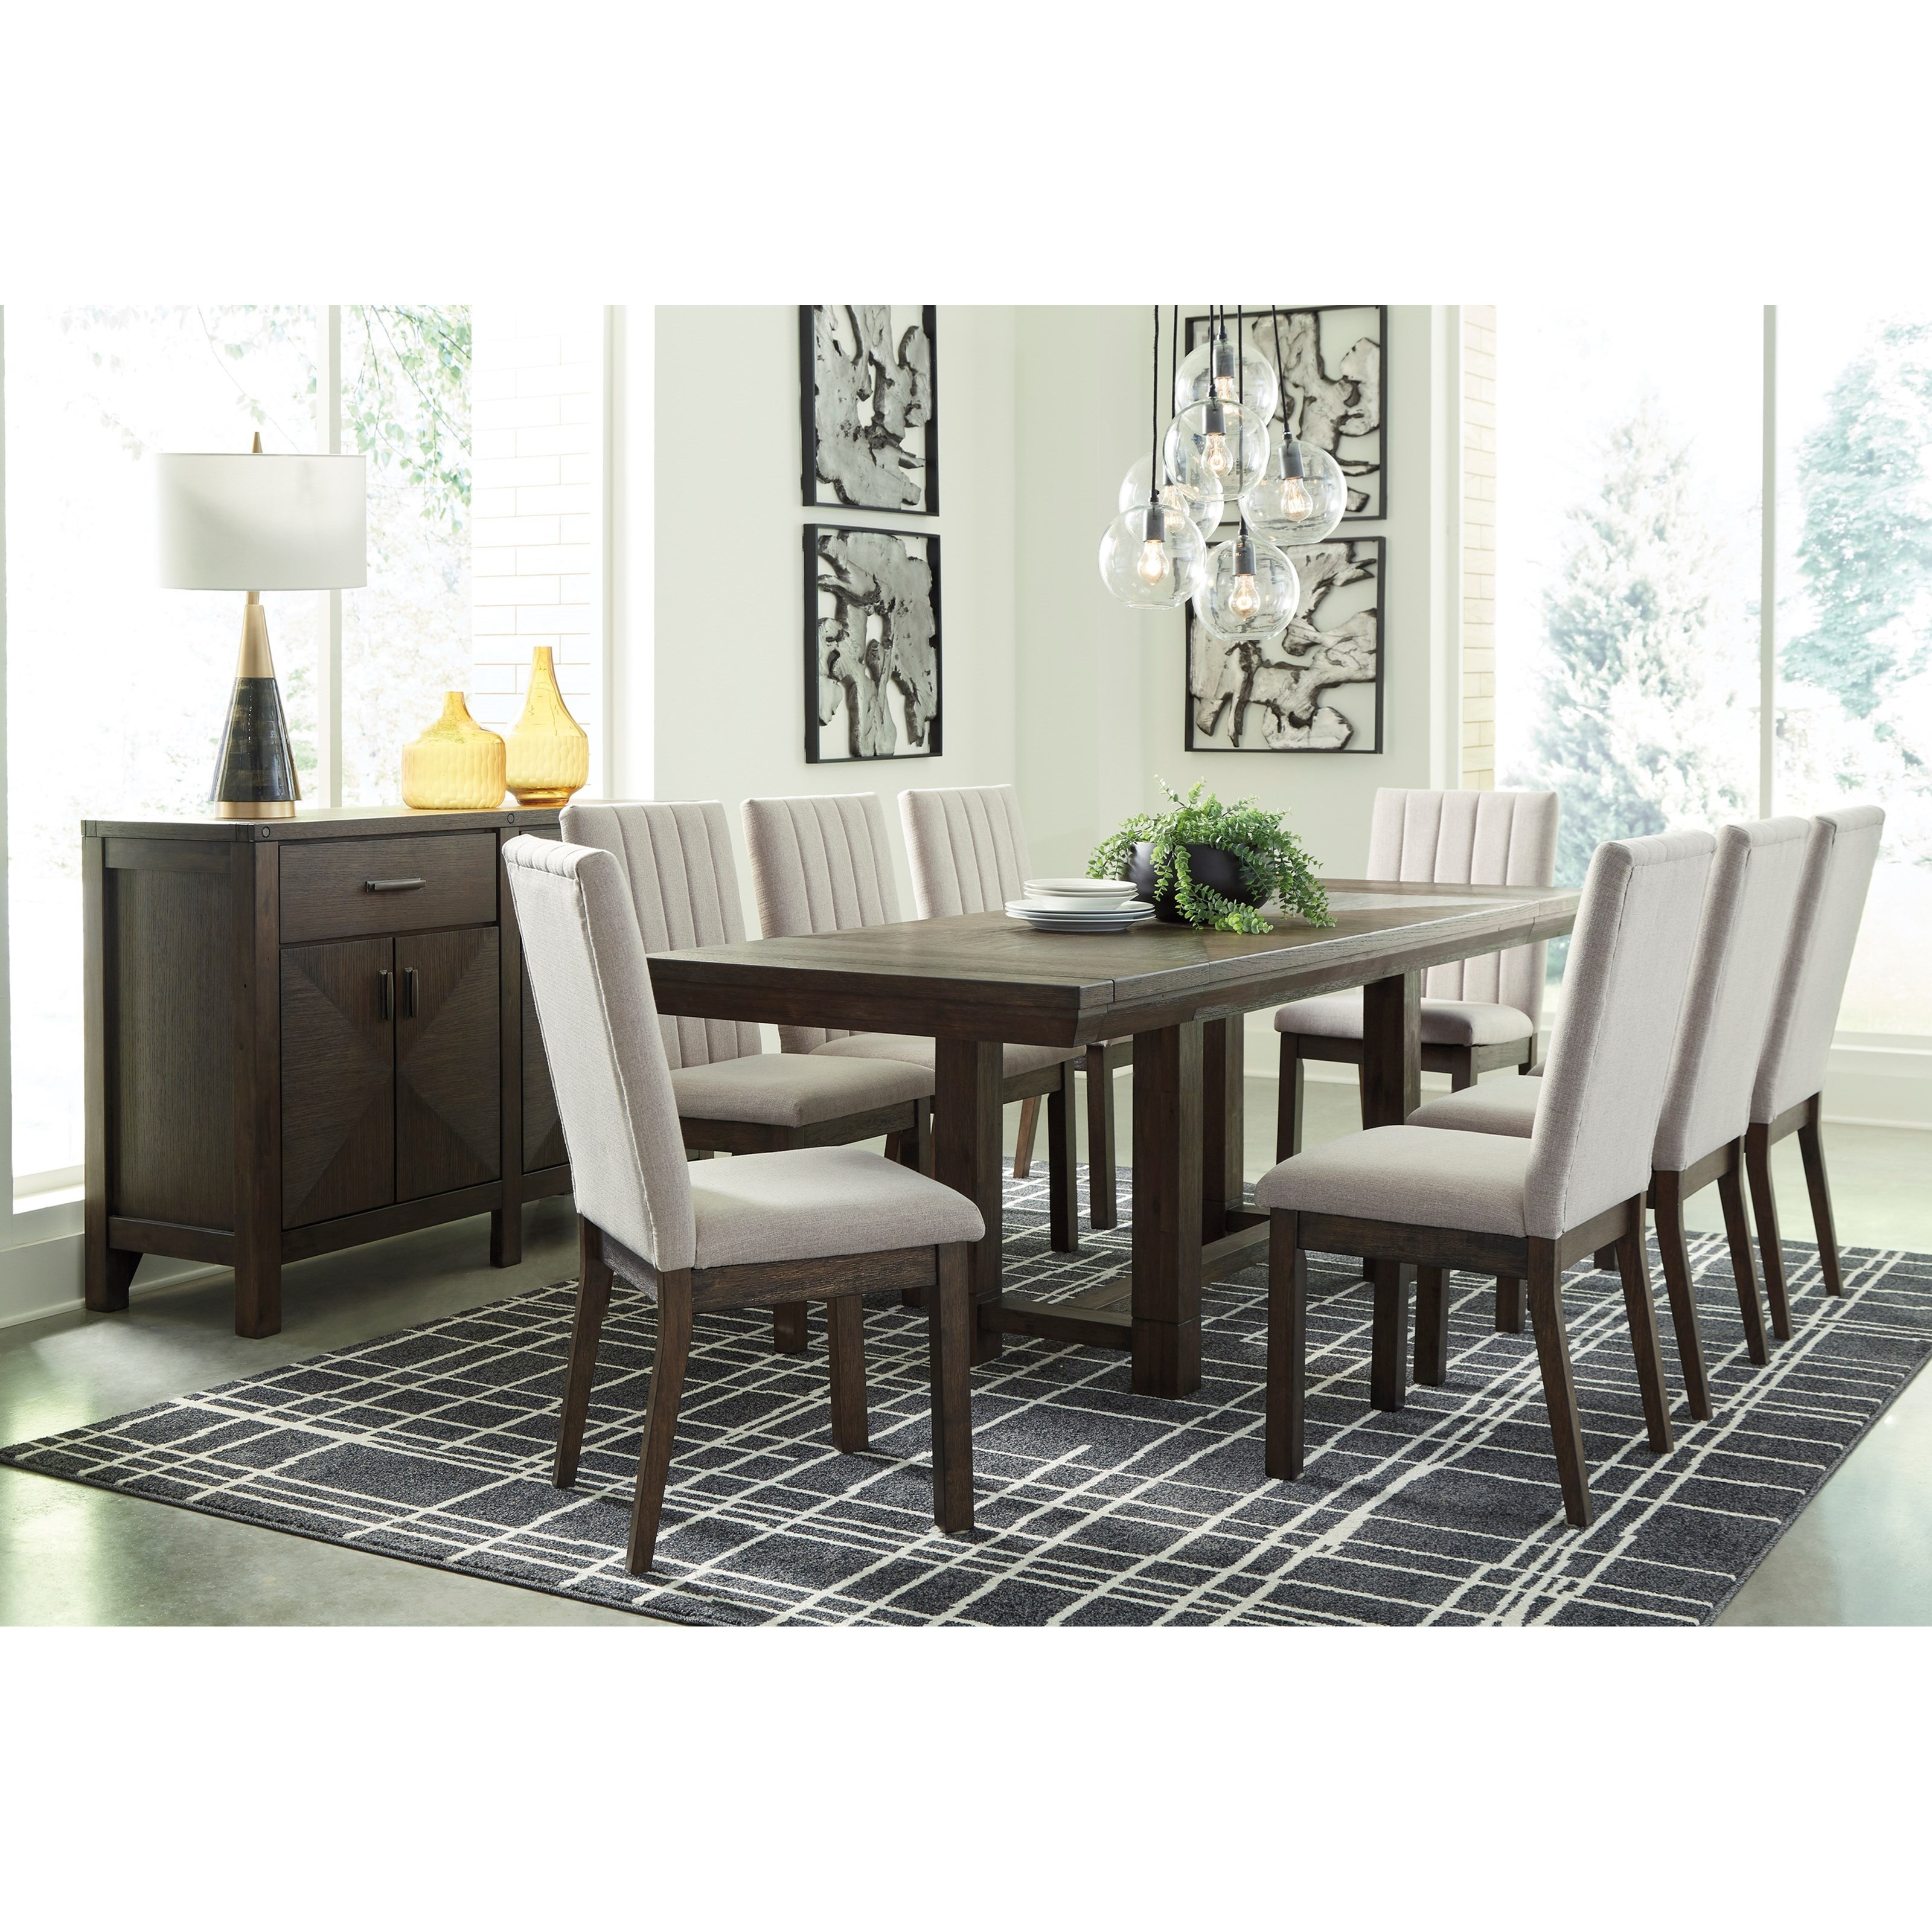 Dellbeck Dining Room Group by Millennium at Value City Furniture